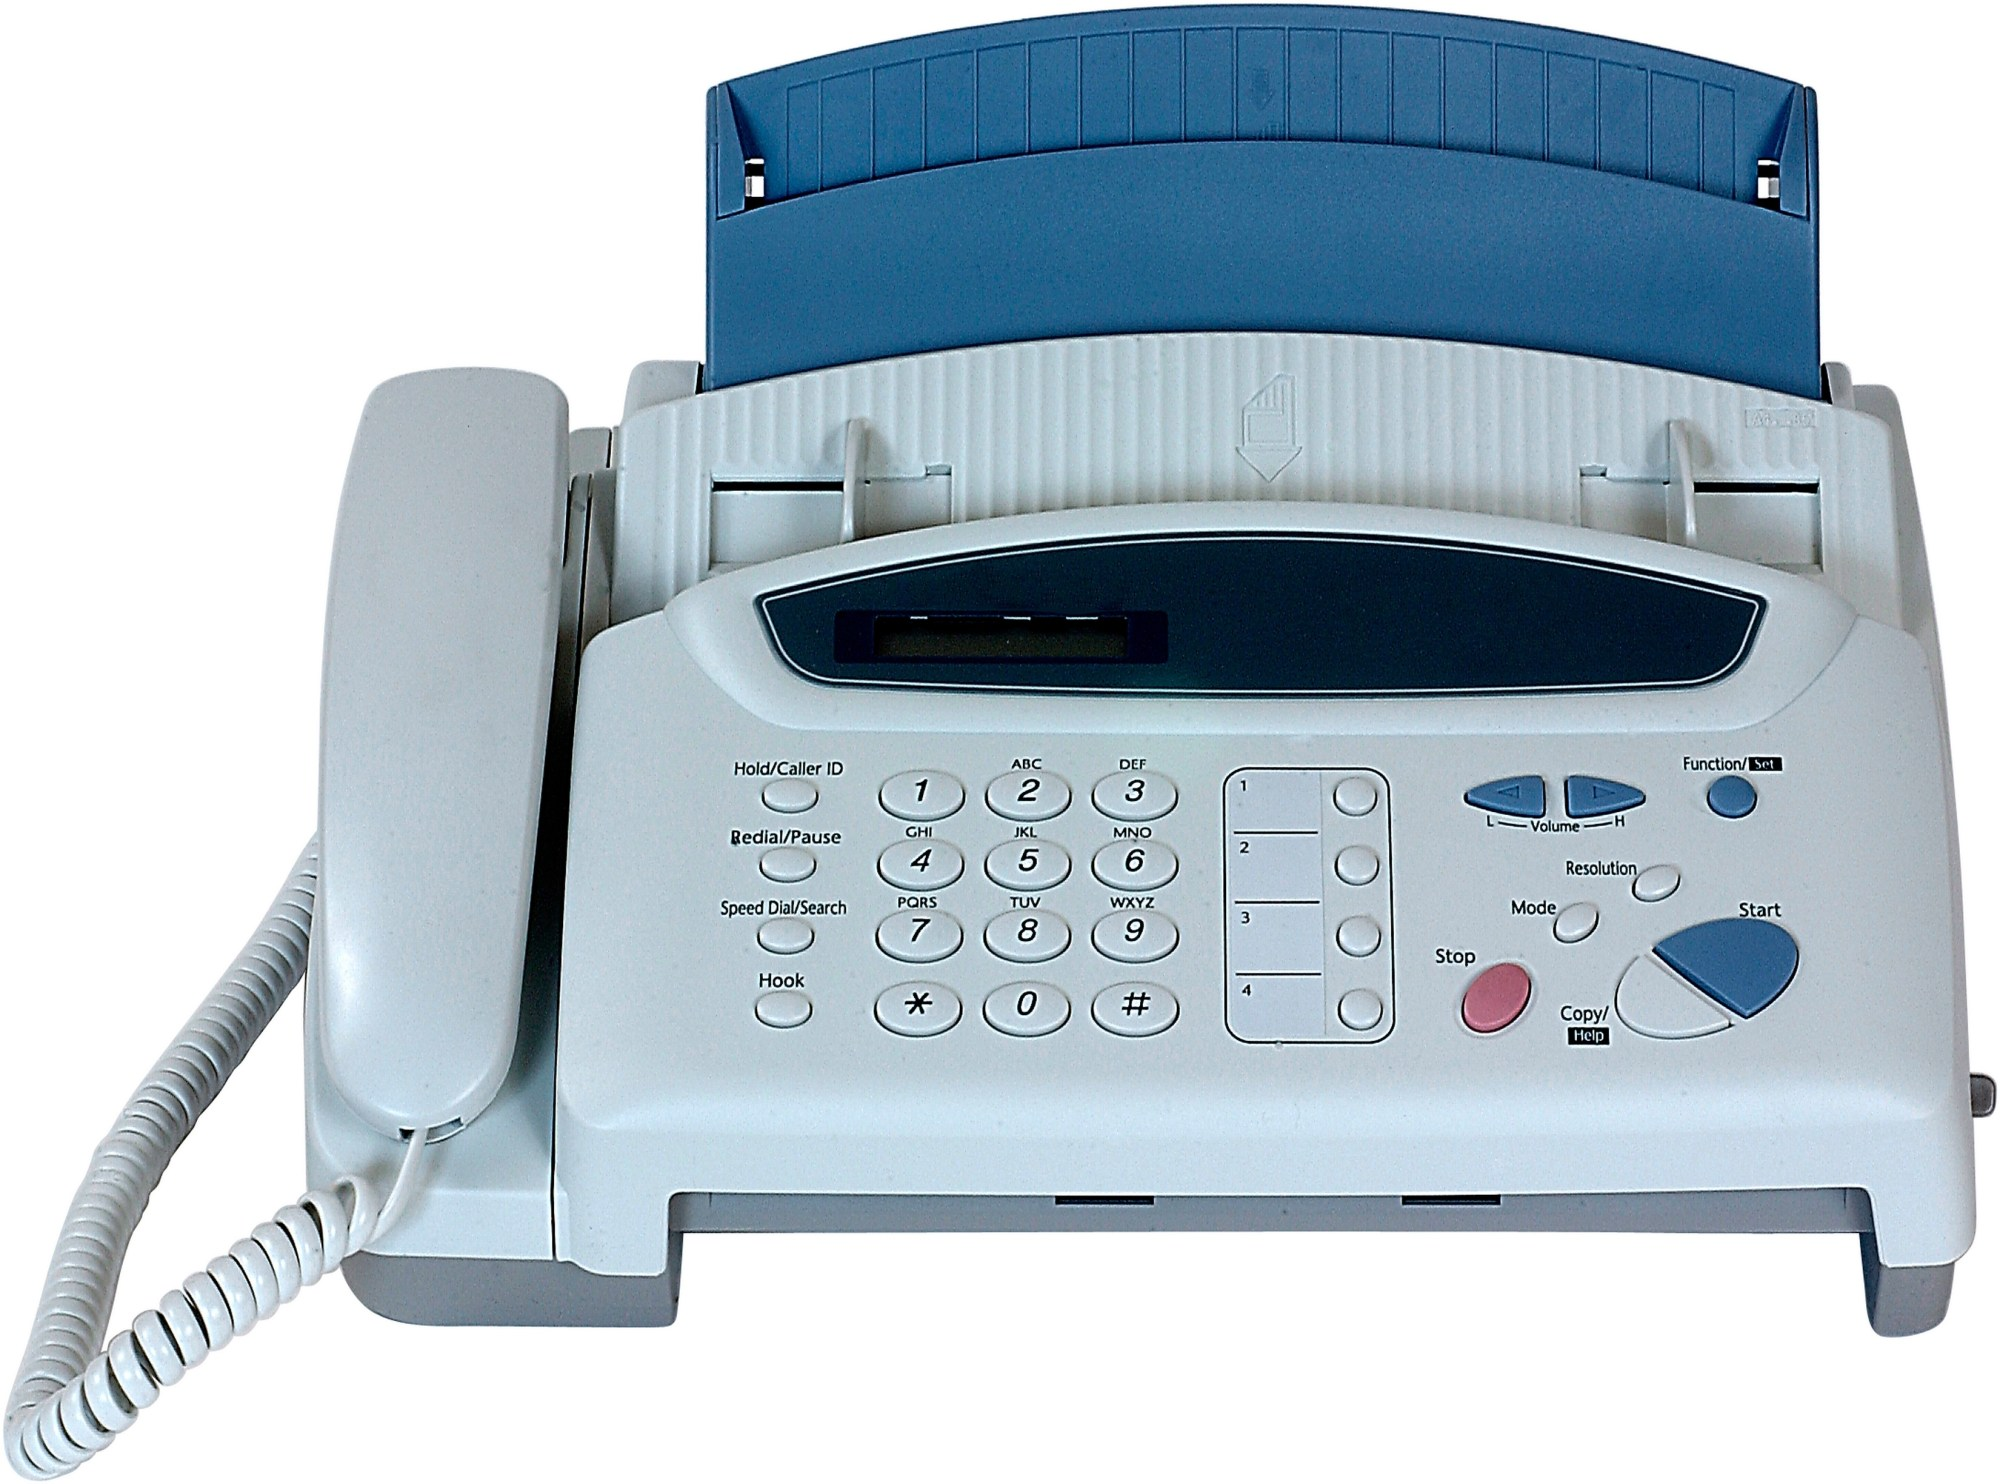 hight resolution of how to set up a fax when you have a single line telephone connection it still works